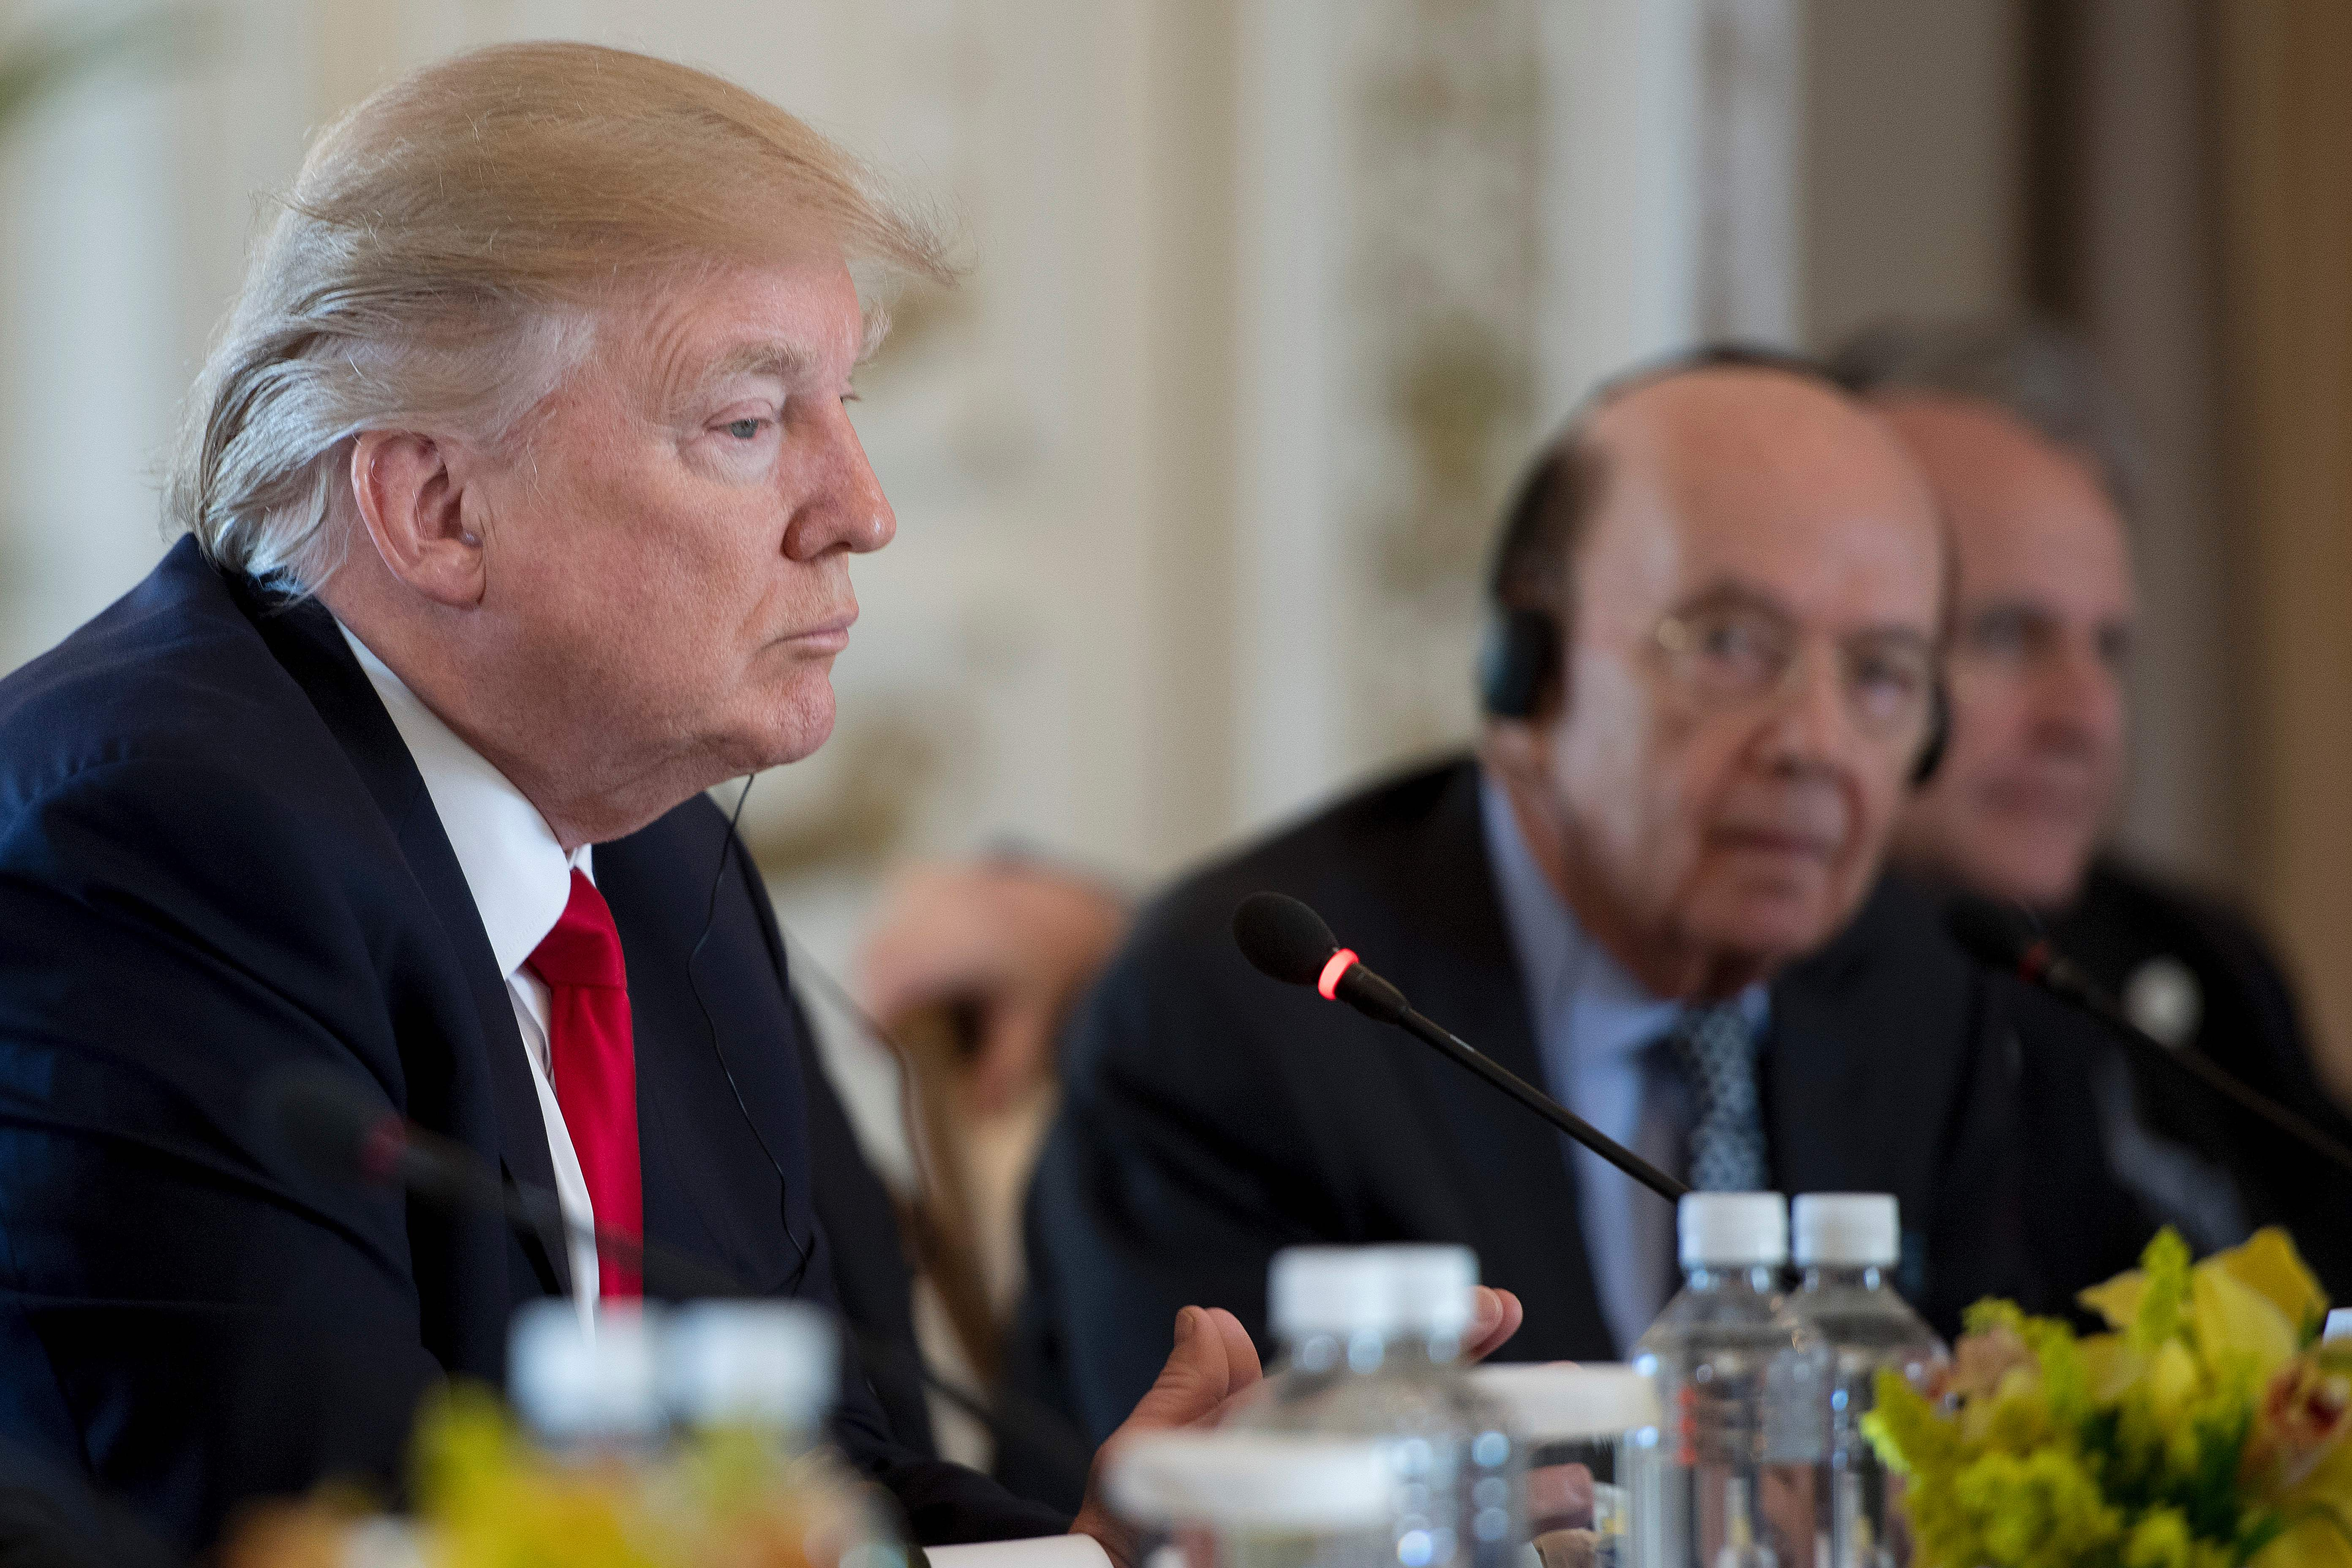 U.S. President Donald Trump listens during an expanded bilateral meeting with Chinese President Xi Jinping, not in the picture, at the Mar-a-Lago estate in West Palm Beach, Fla., on April 7, 2017